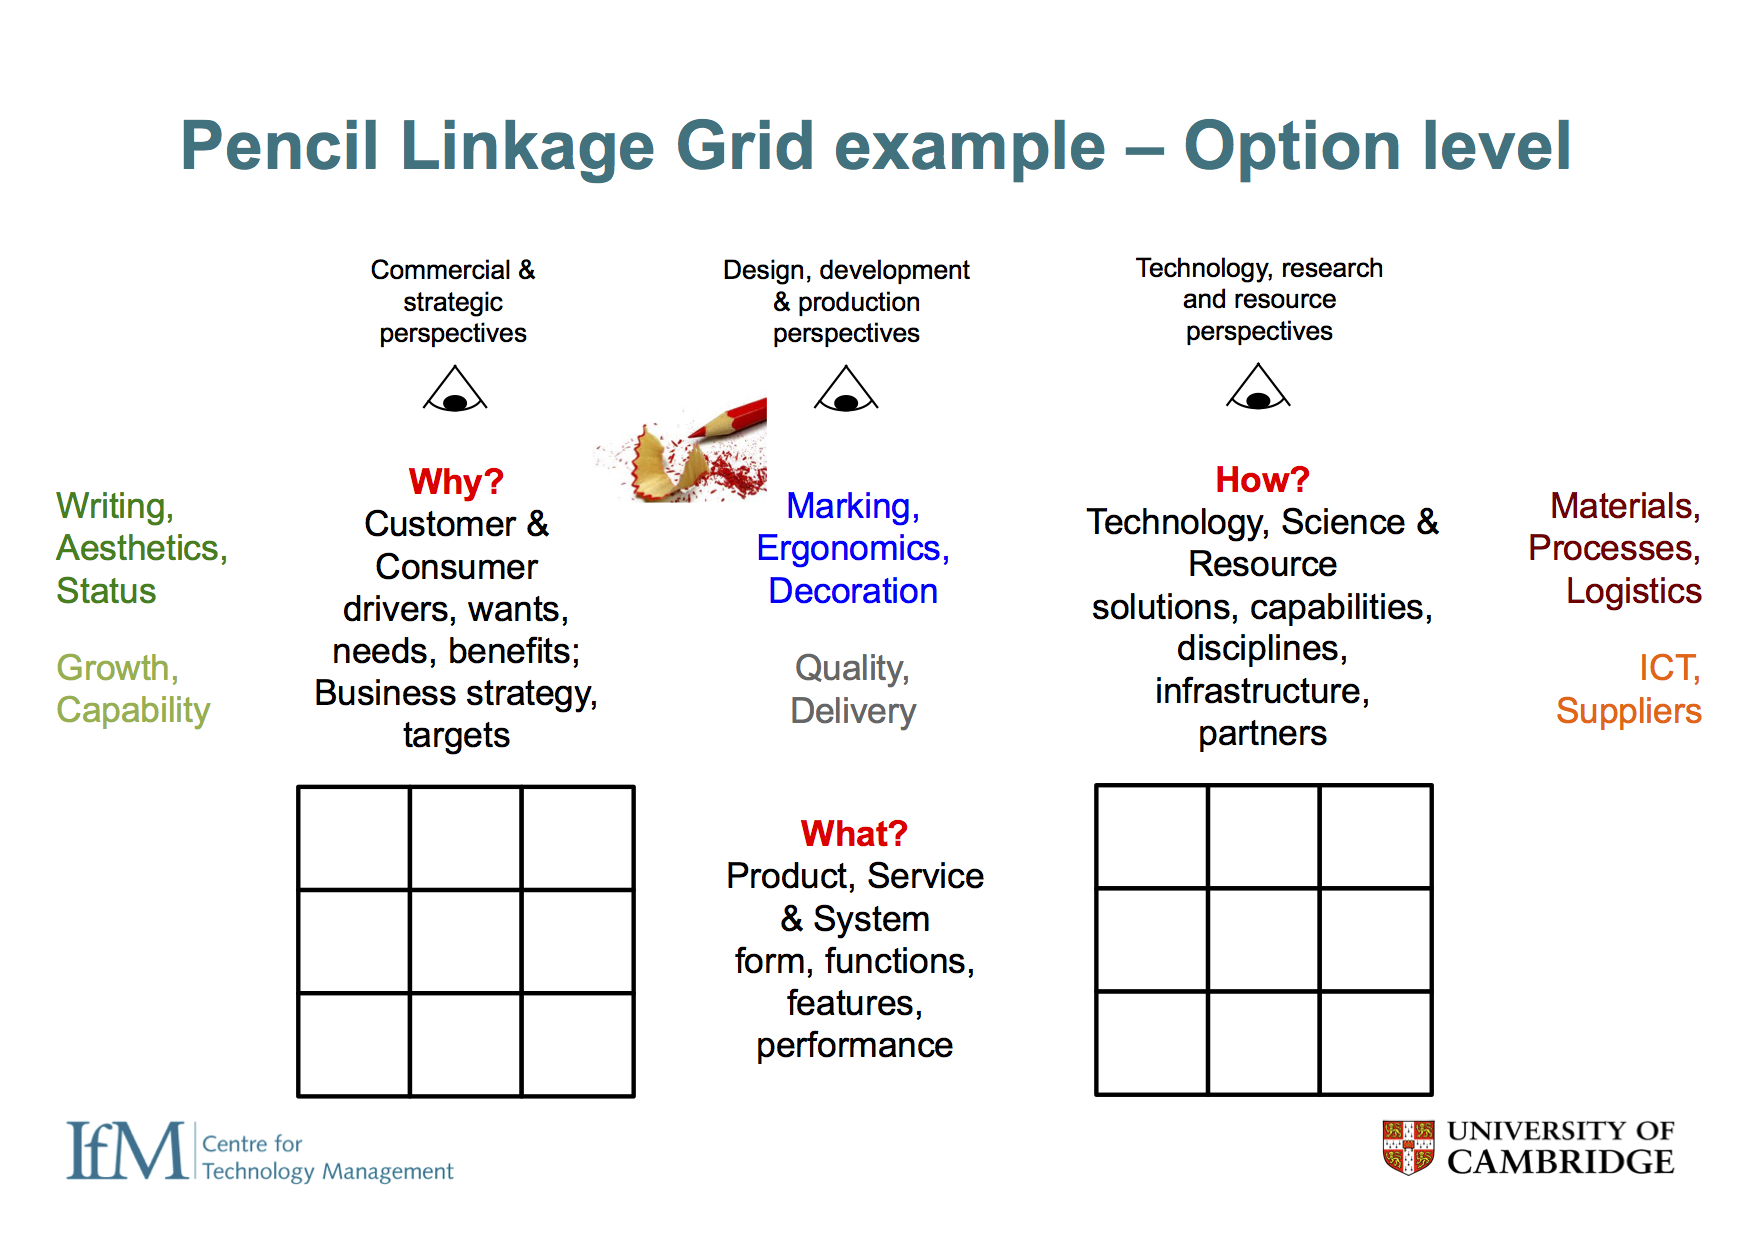 Focusing on the two core interlinked grids, sub-structure needs to be defined in terms of rows and columns of the grids, which correspond directly to sub-layers of the roadmap. At the 'option level' (one product of a business - e.g. a pencil), customer needs might include the need to write (communicate), aesthetic desires and status, with business needs of growth and capability development ('why'). The functionality and performance of the product itself includes marking, ergonomics and decoration, with business metrics relating to quality and delivery, for example ('what'). Technology and competences such as materials, manufacturing processes and logistics will be important, along with ICT infrastructure and supplier relationships ('how').